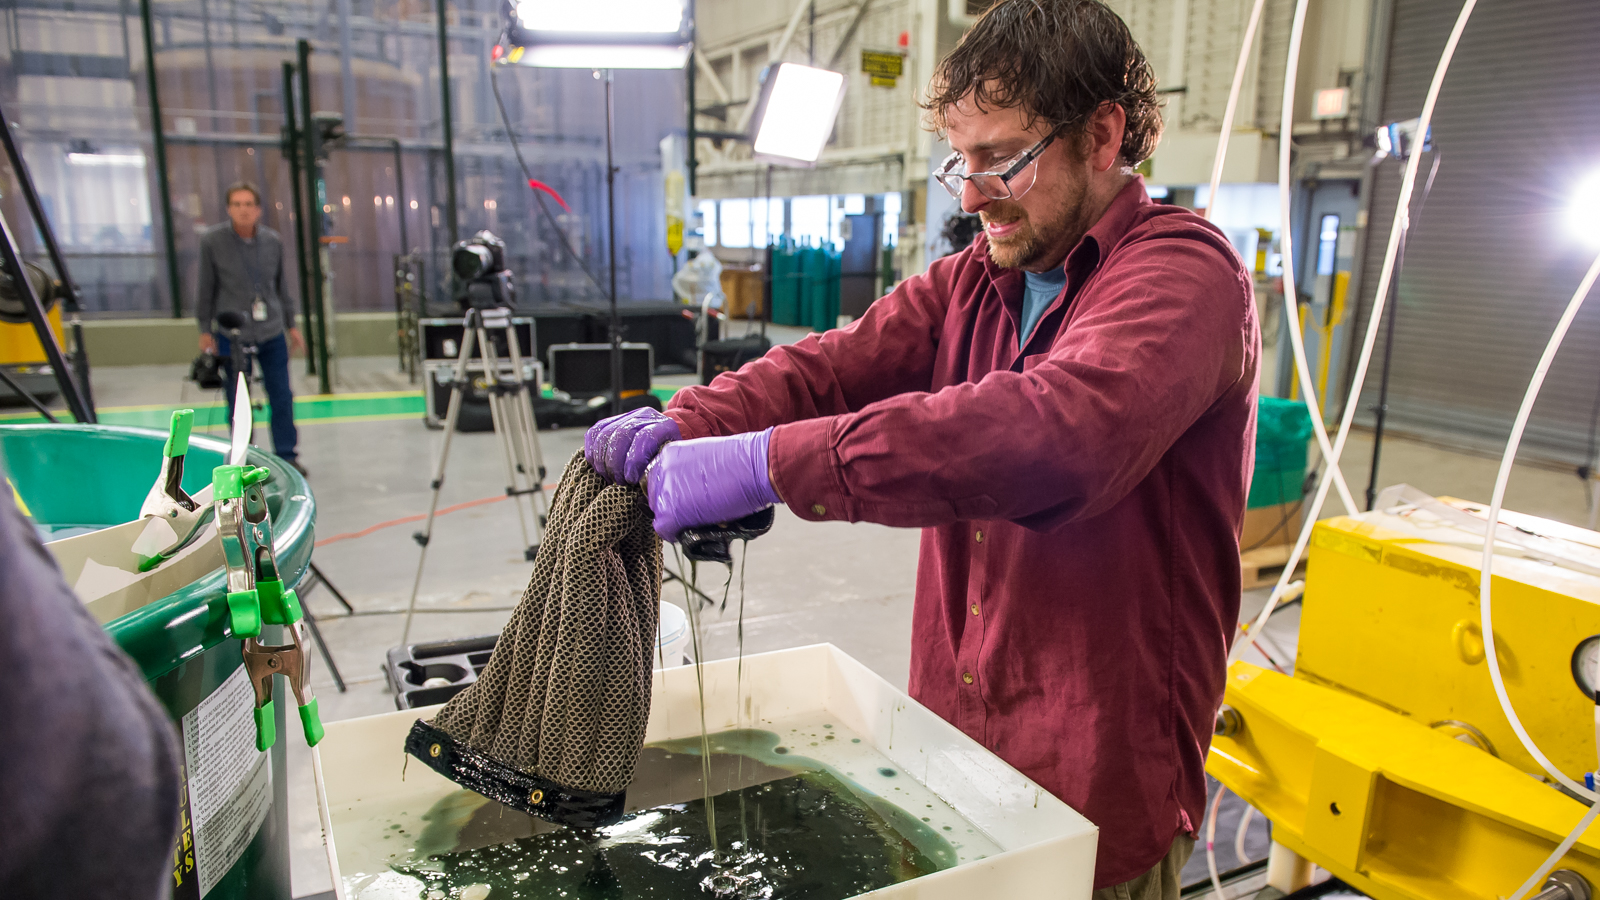 Argonne postdoctoral researcher Ed Barry wrings out a sheet of Oleo Sponge during tests at Argonne.